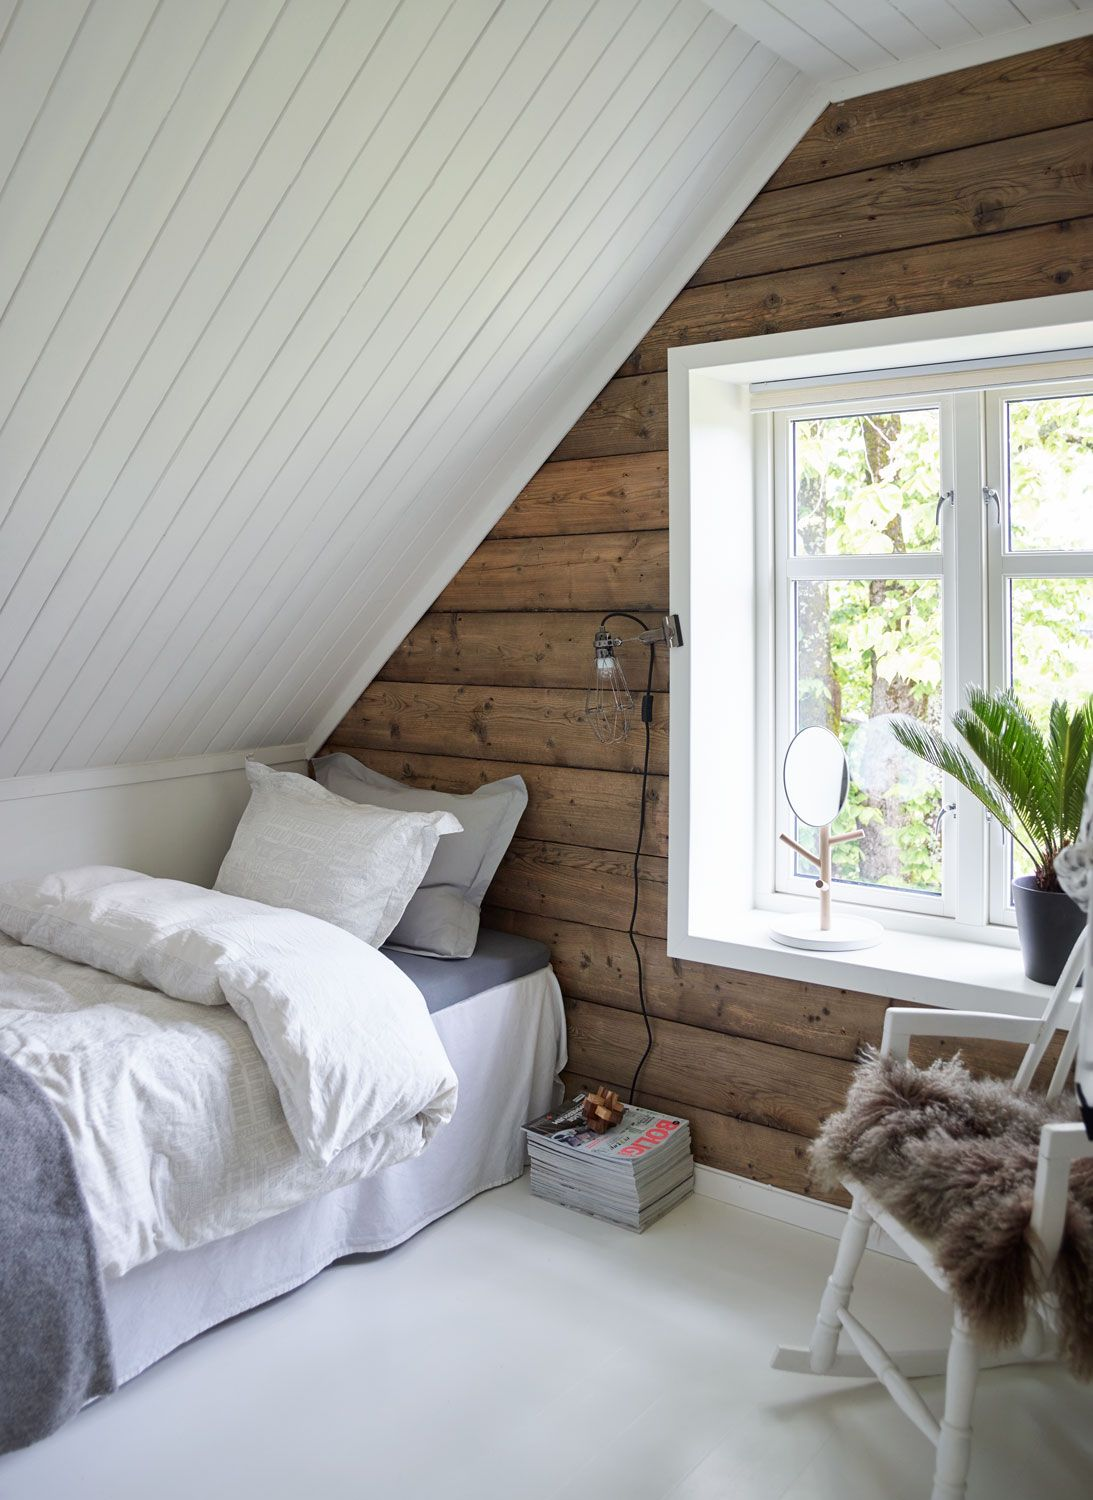 Attic Bedroom Design And D Cor Tips Small Attic Bedrooms Small Attics And Ship Lap